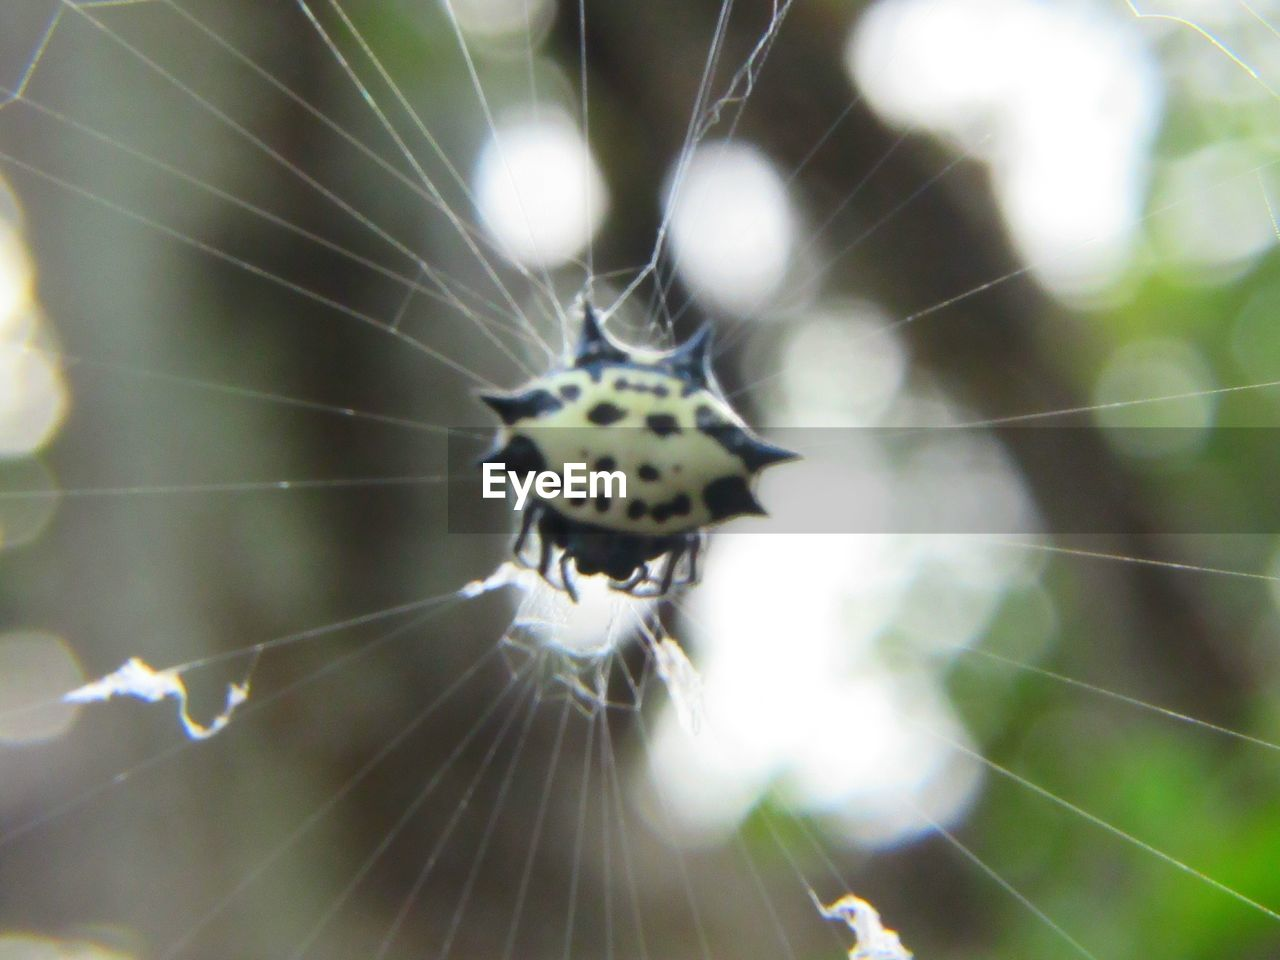 spider web, one animal, animal, animal themes, close-up, animals in the wild, fragility, focus on foreground, invertebrate, day, animal wildlife, insect, no people, nature, vulnerability, selective focus, beauty in nature, arachnid, arthropod, outdoors, web, butterfly - insect